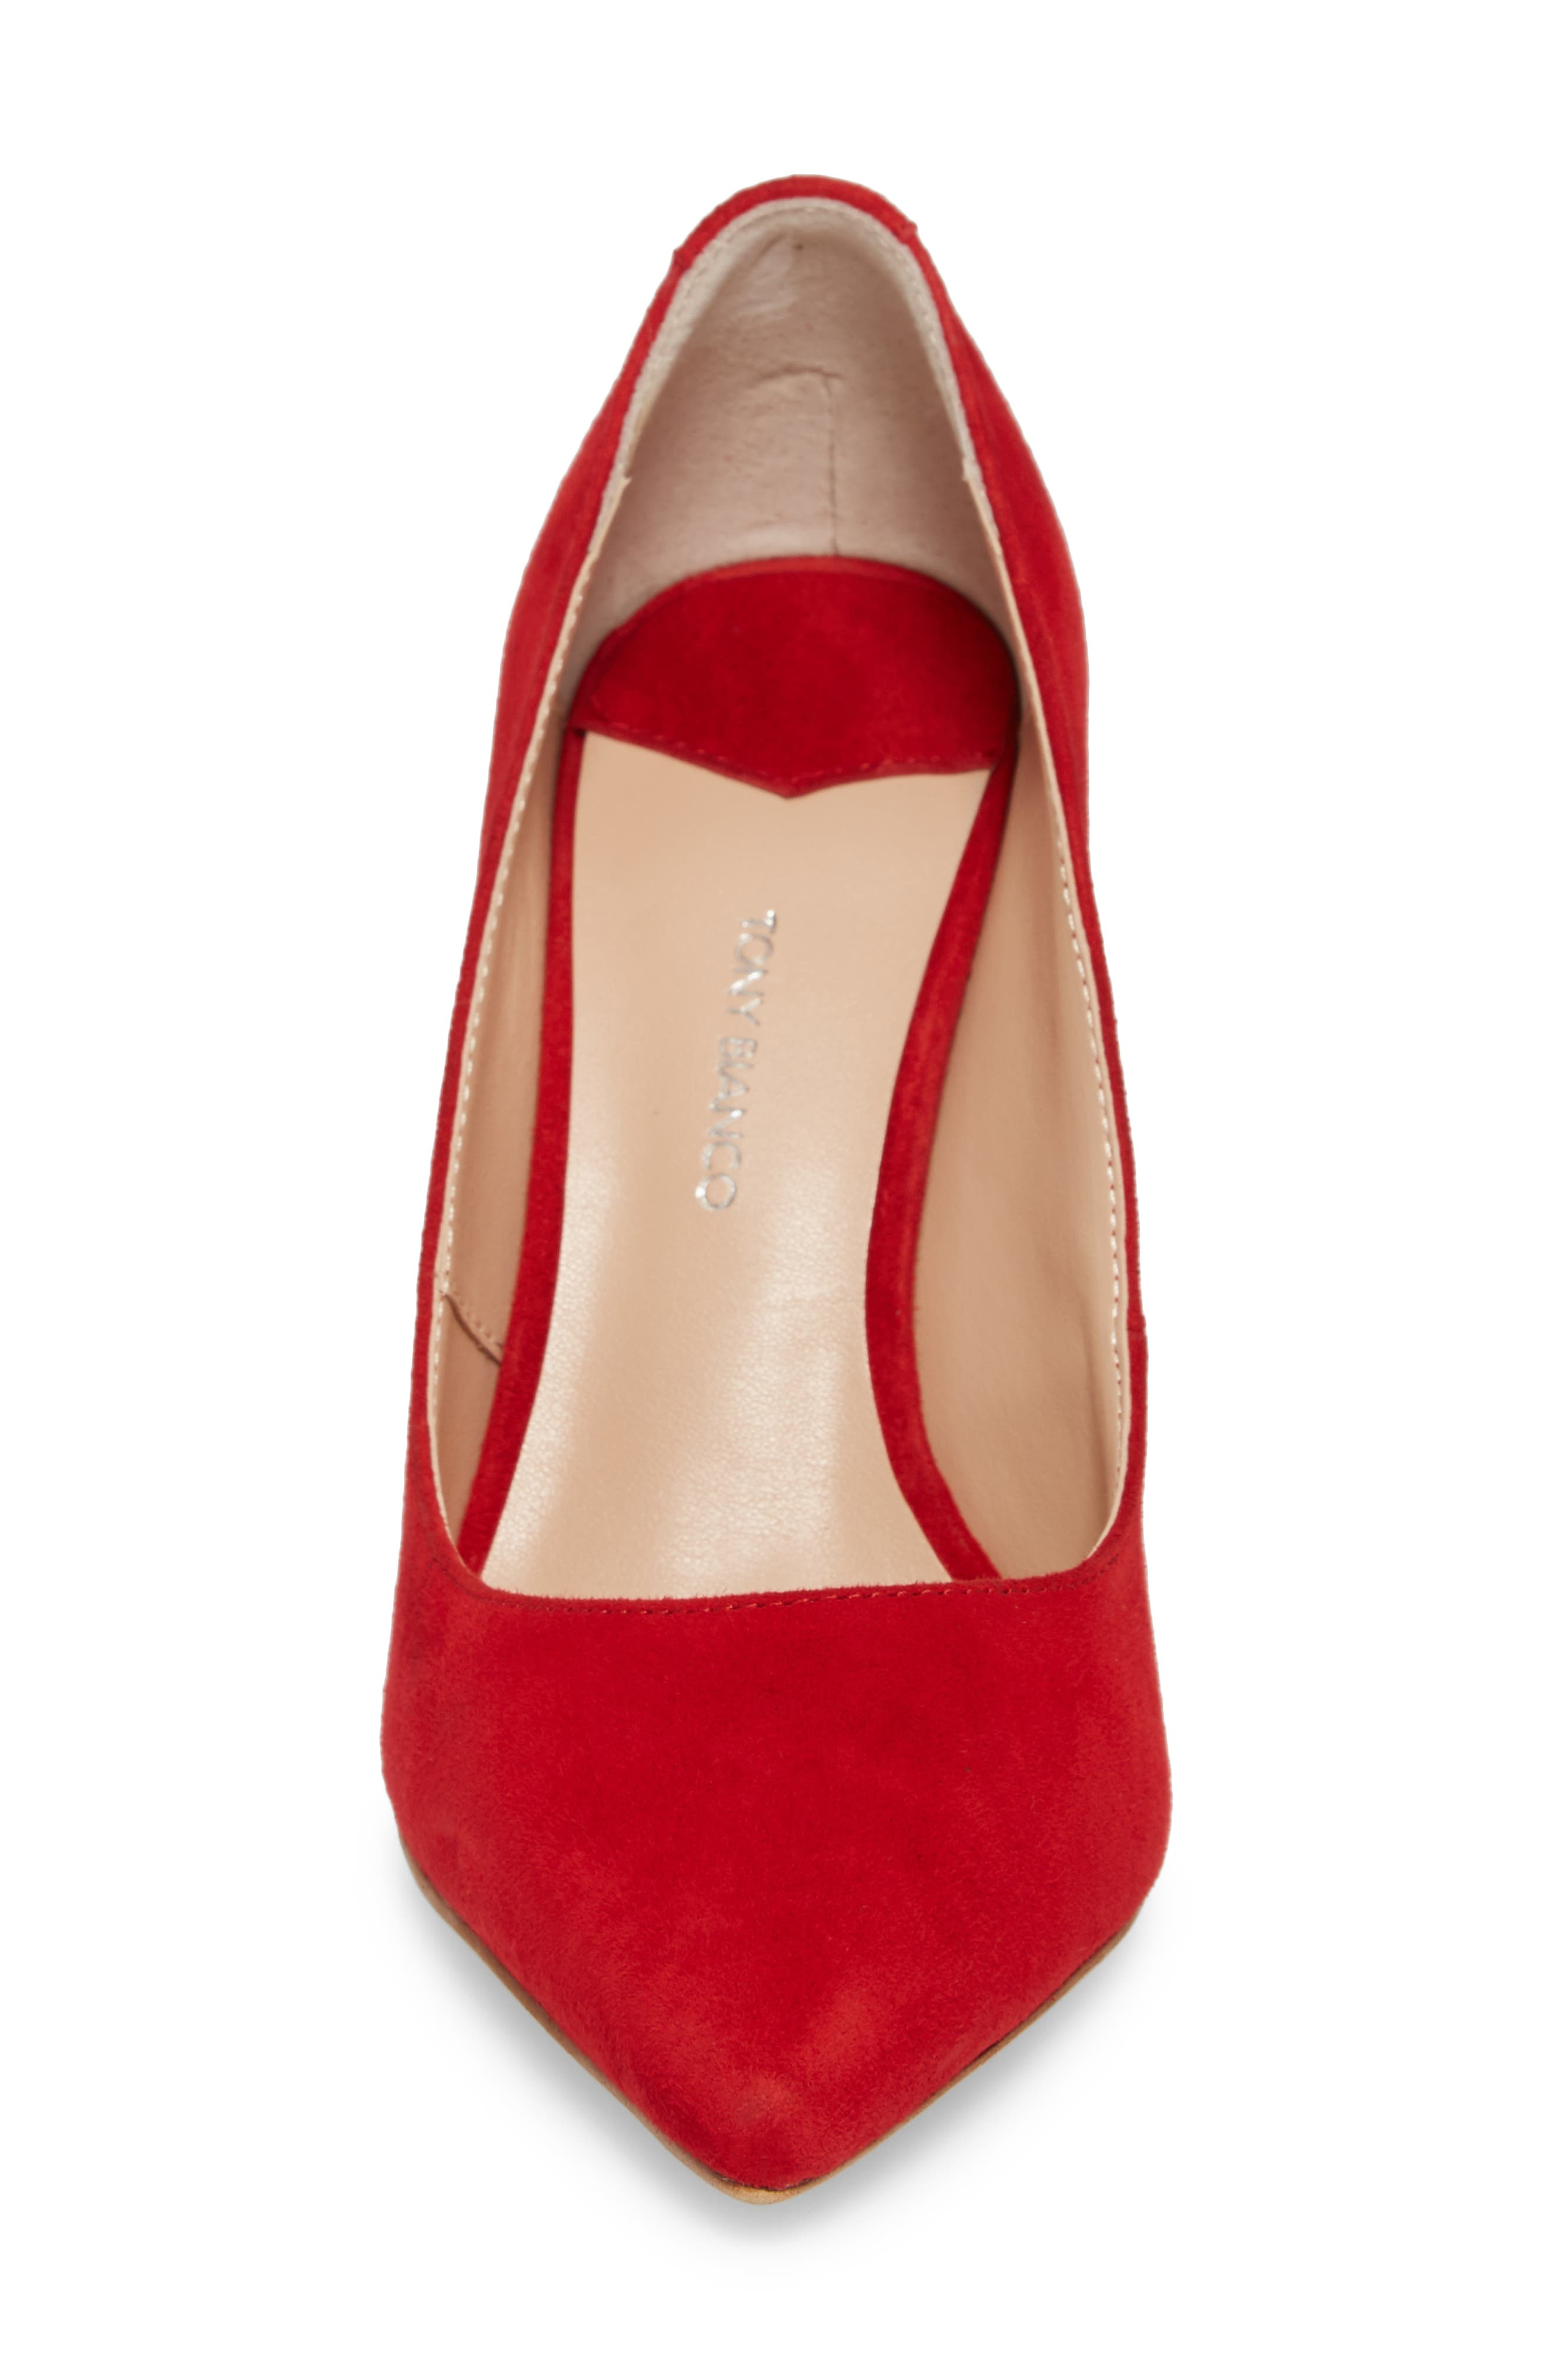 Lotus Pointy Toe Pump,                             Alternate thumbnail 4, color,                             FIRE SUEDE